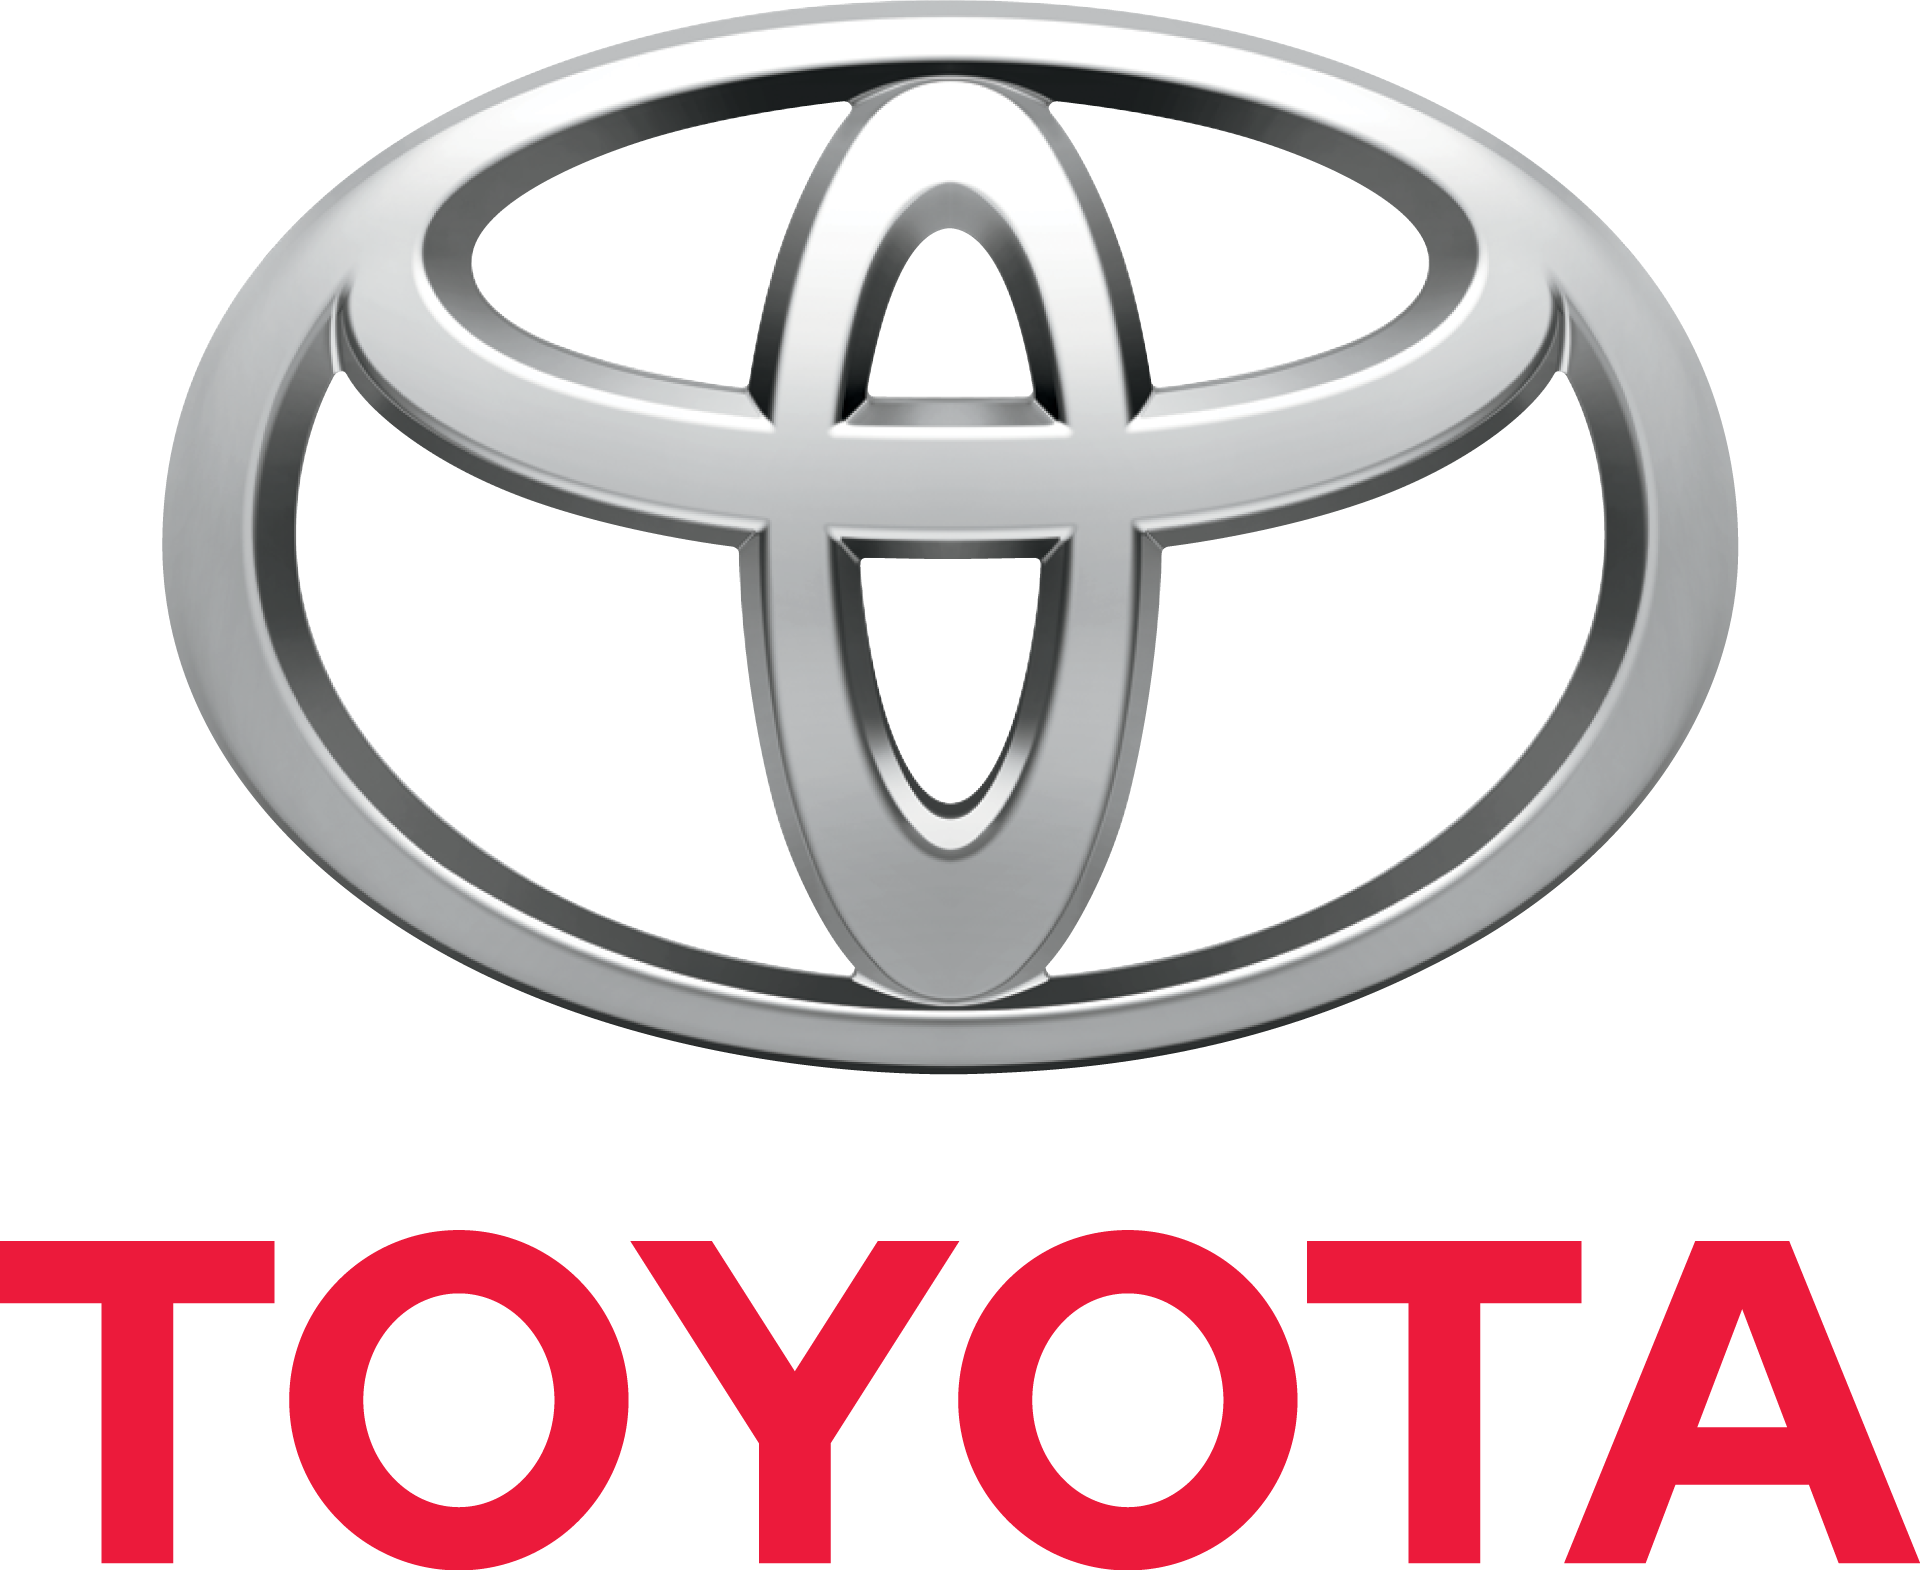 Toyota Logo   Google Search - Toyota Vector, Transparent background PNG HD thumbnail